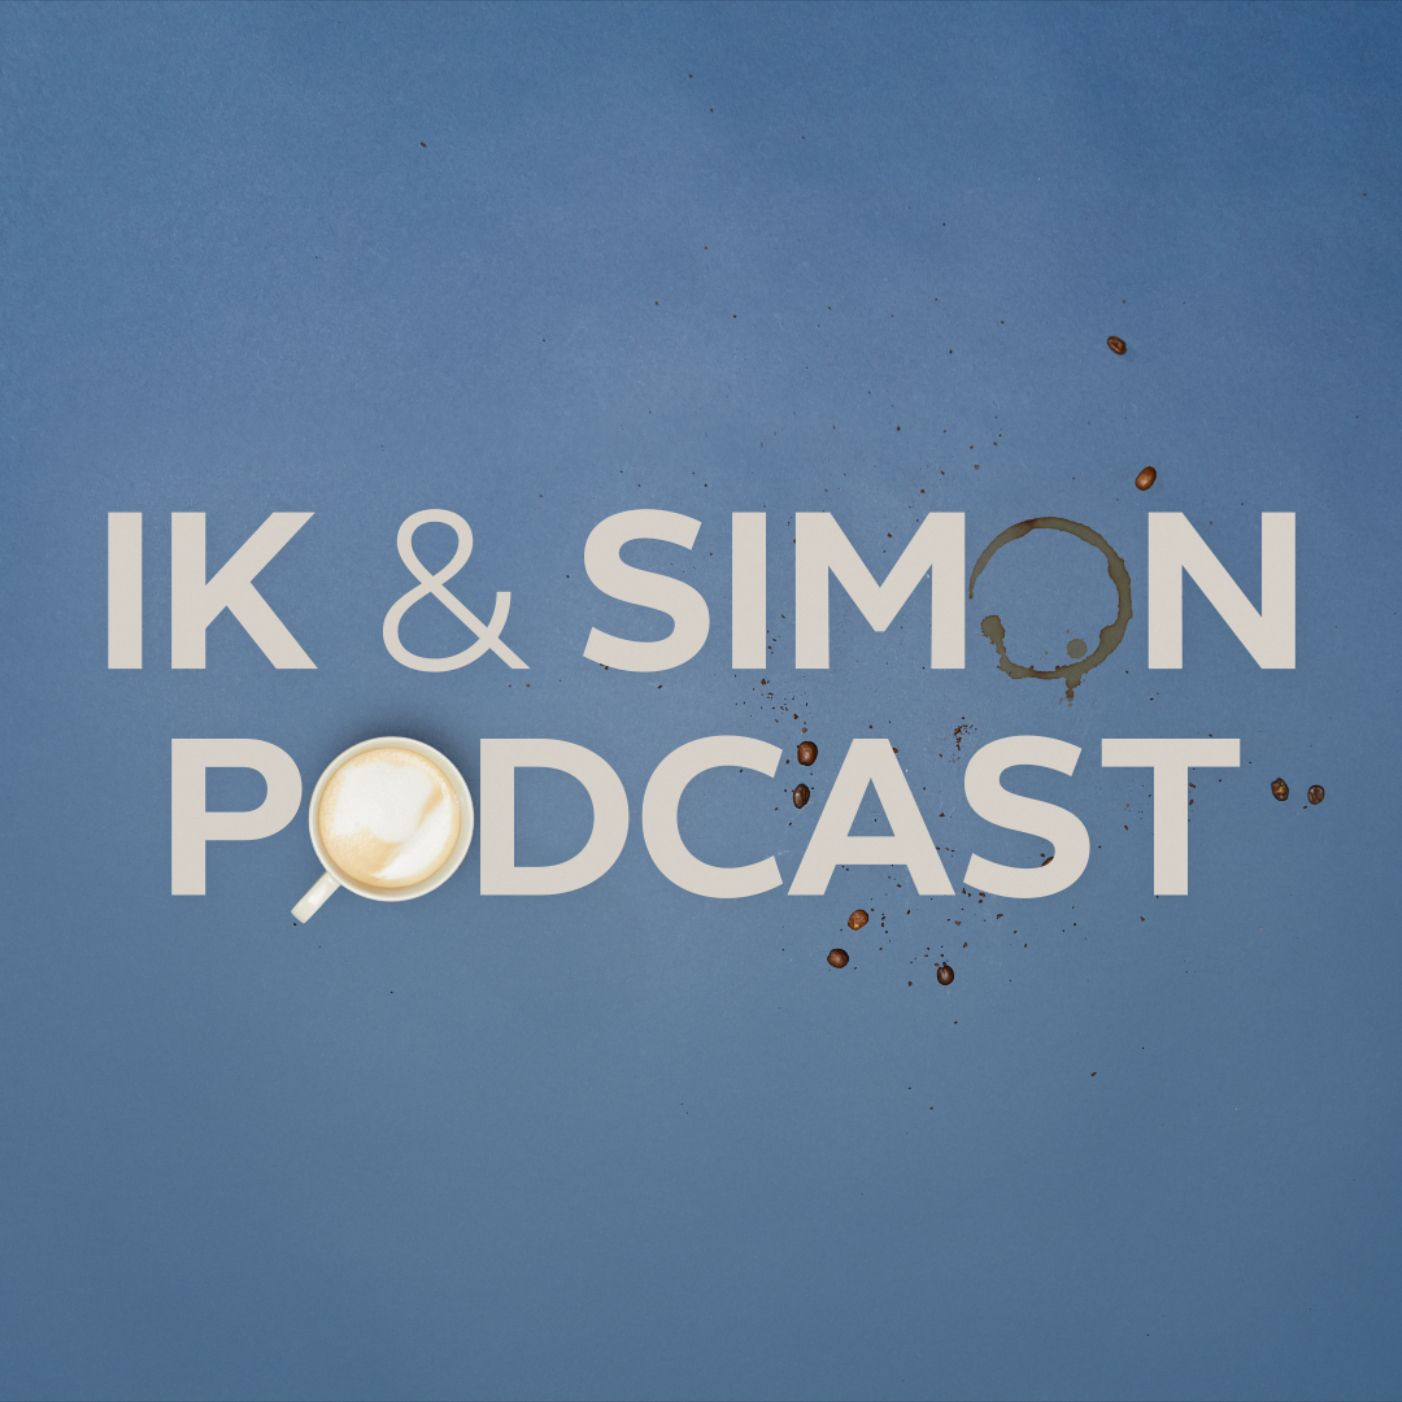 Ik & Simon Podcast logo